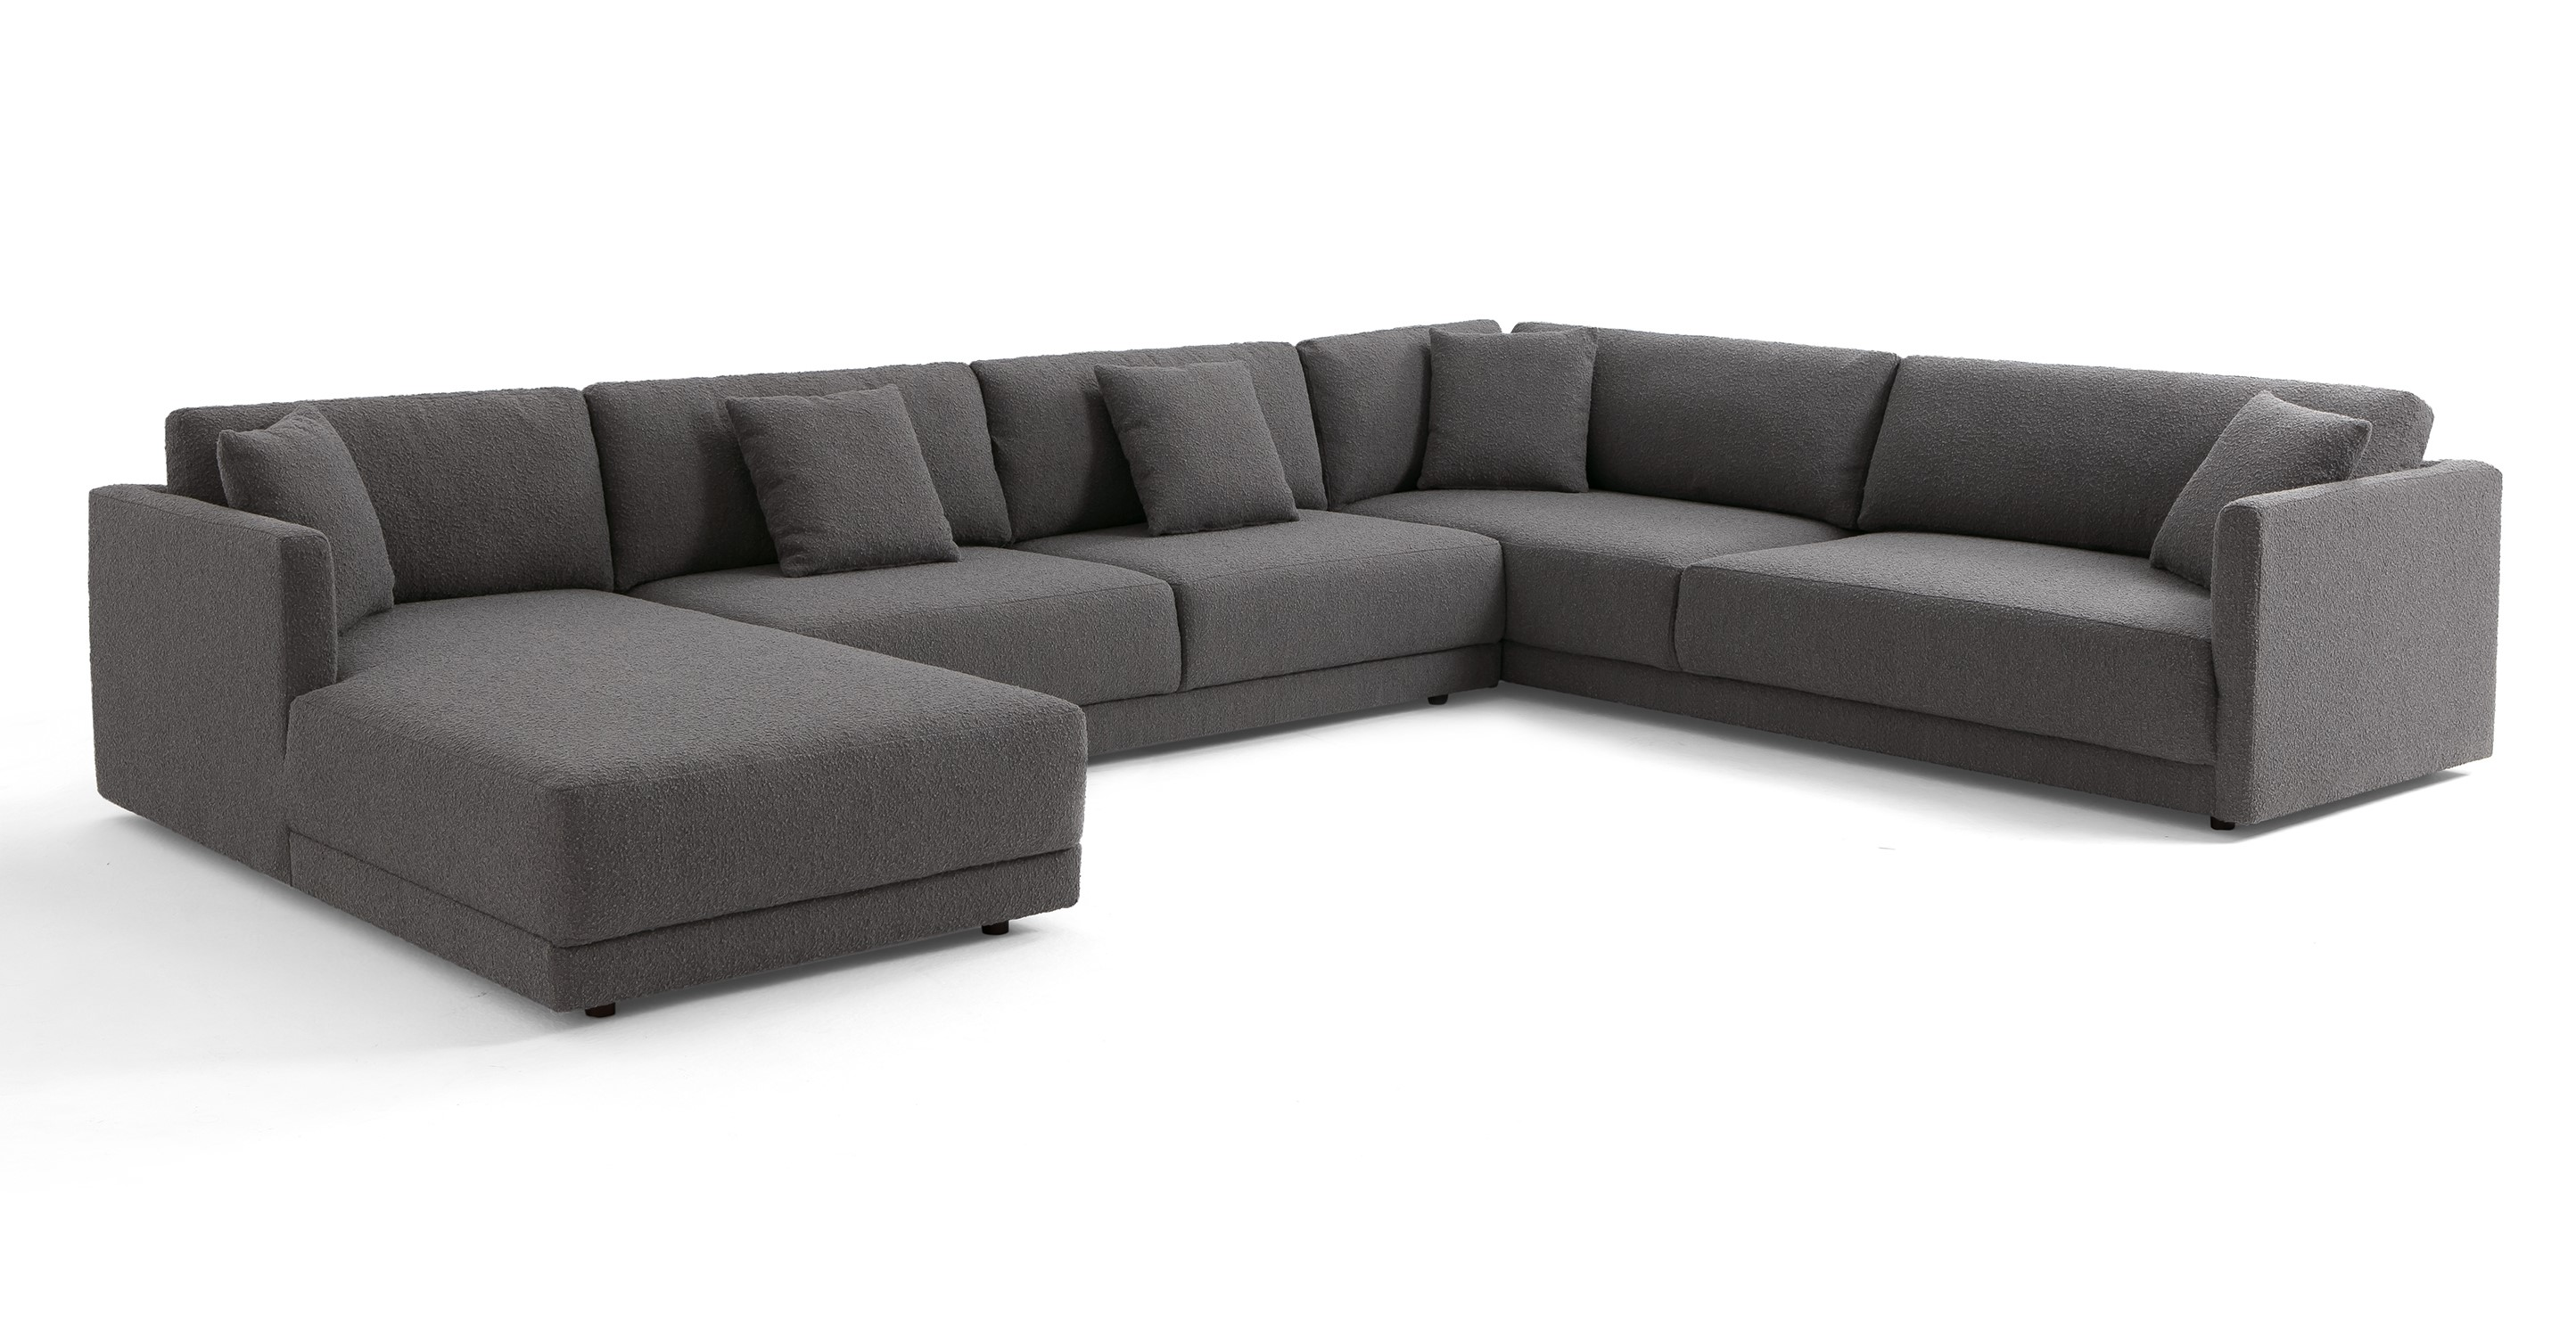 "Domus 155"" 3-pc 3-Sided Sofa Sectional Left, Gris Boucle"